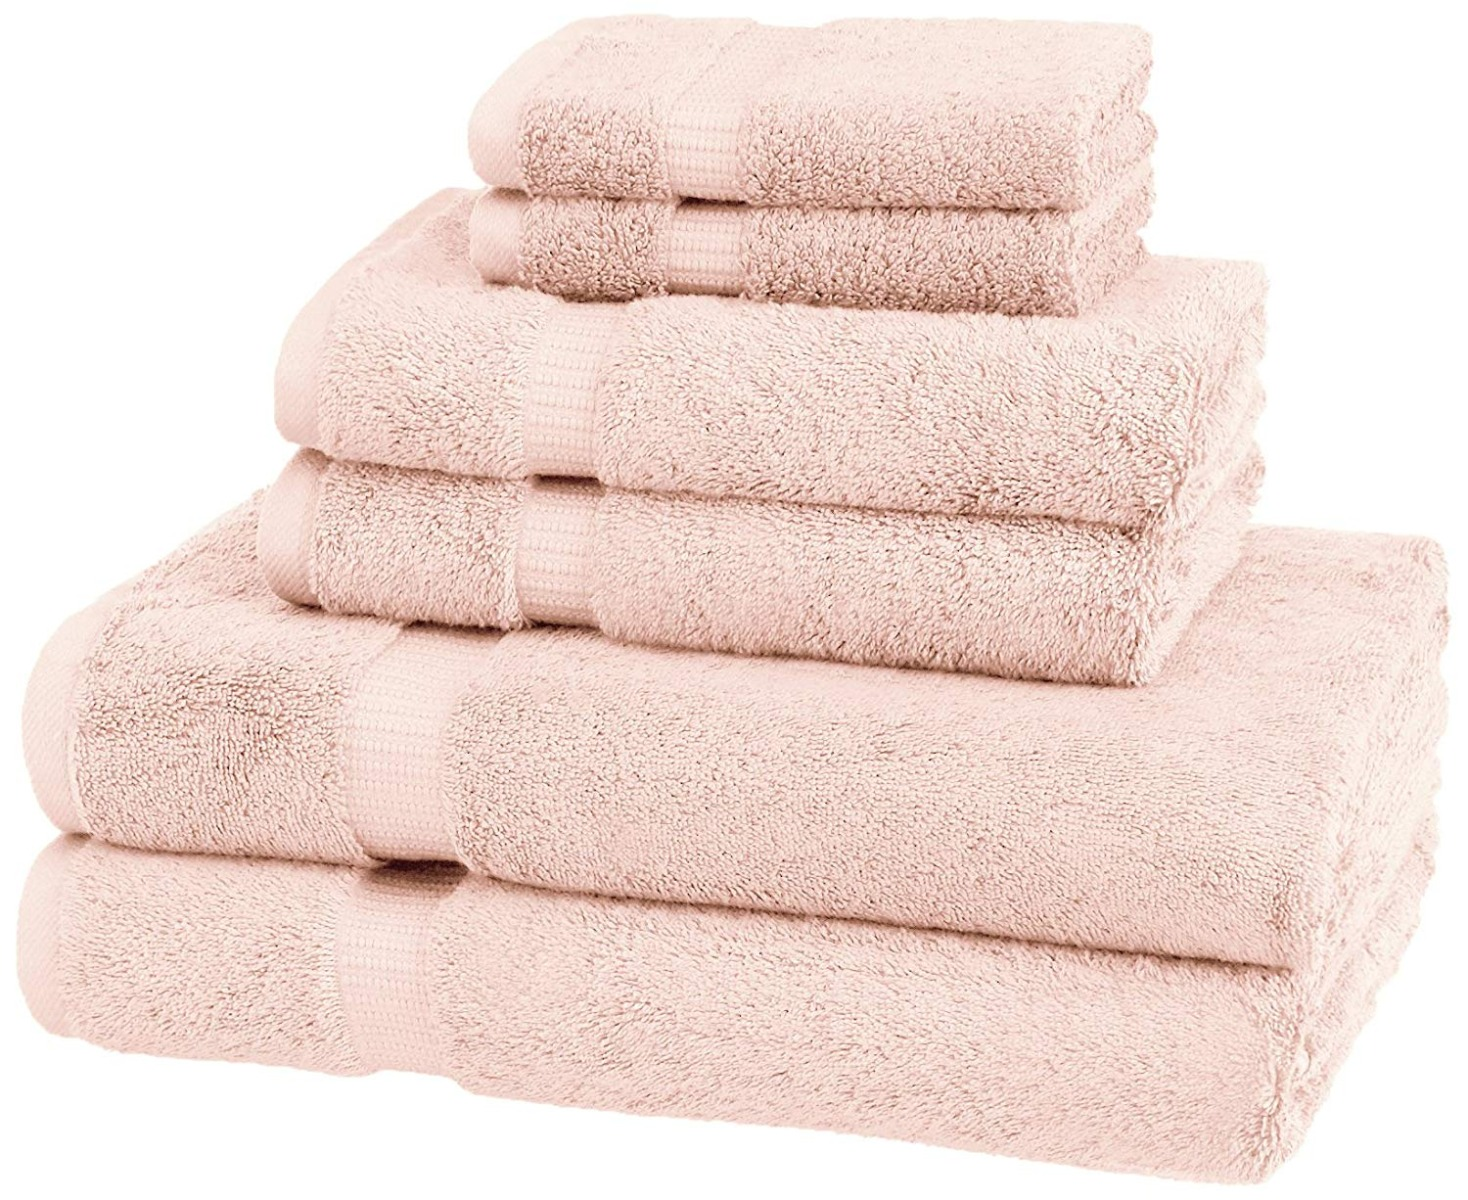 Supperfile collection - Bath towel pink 70x140